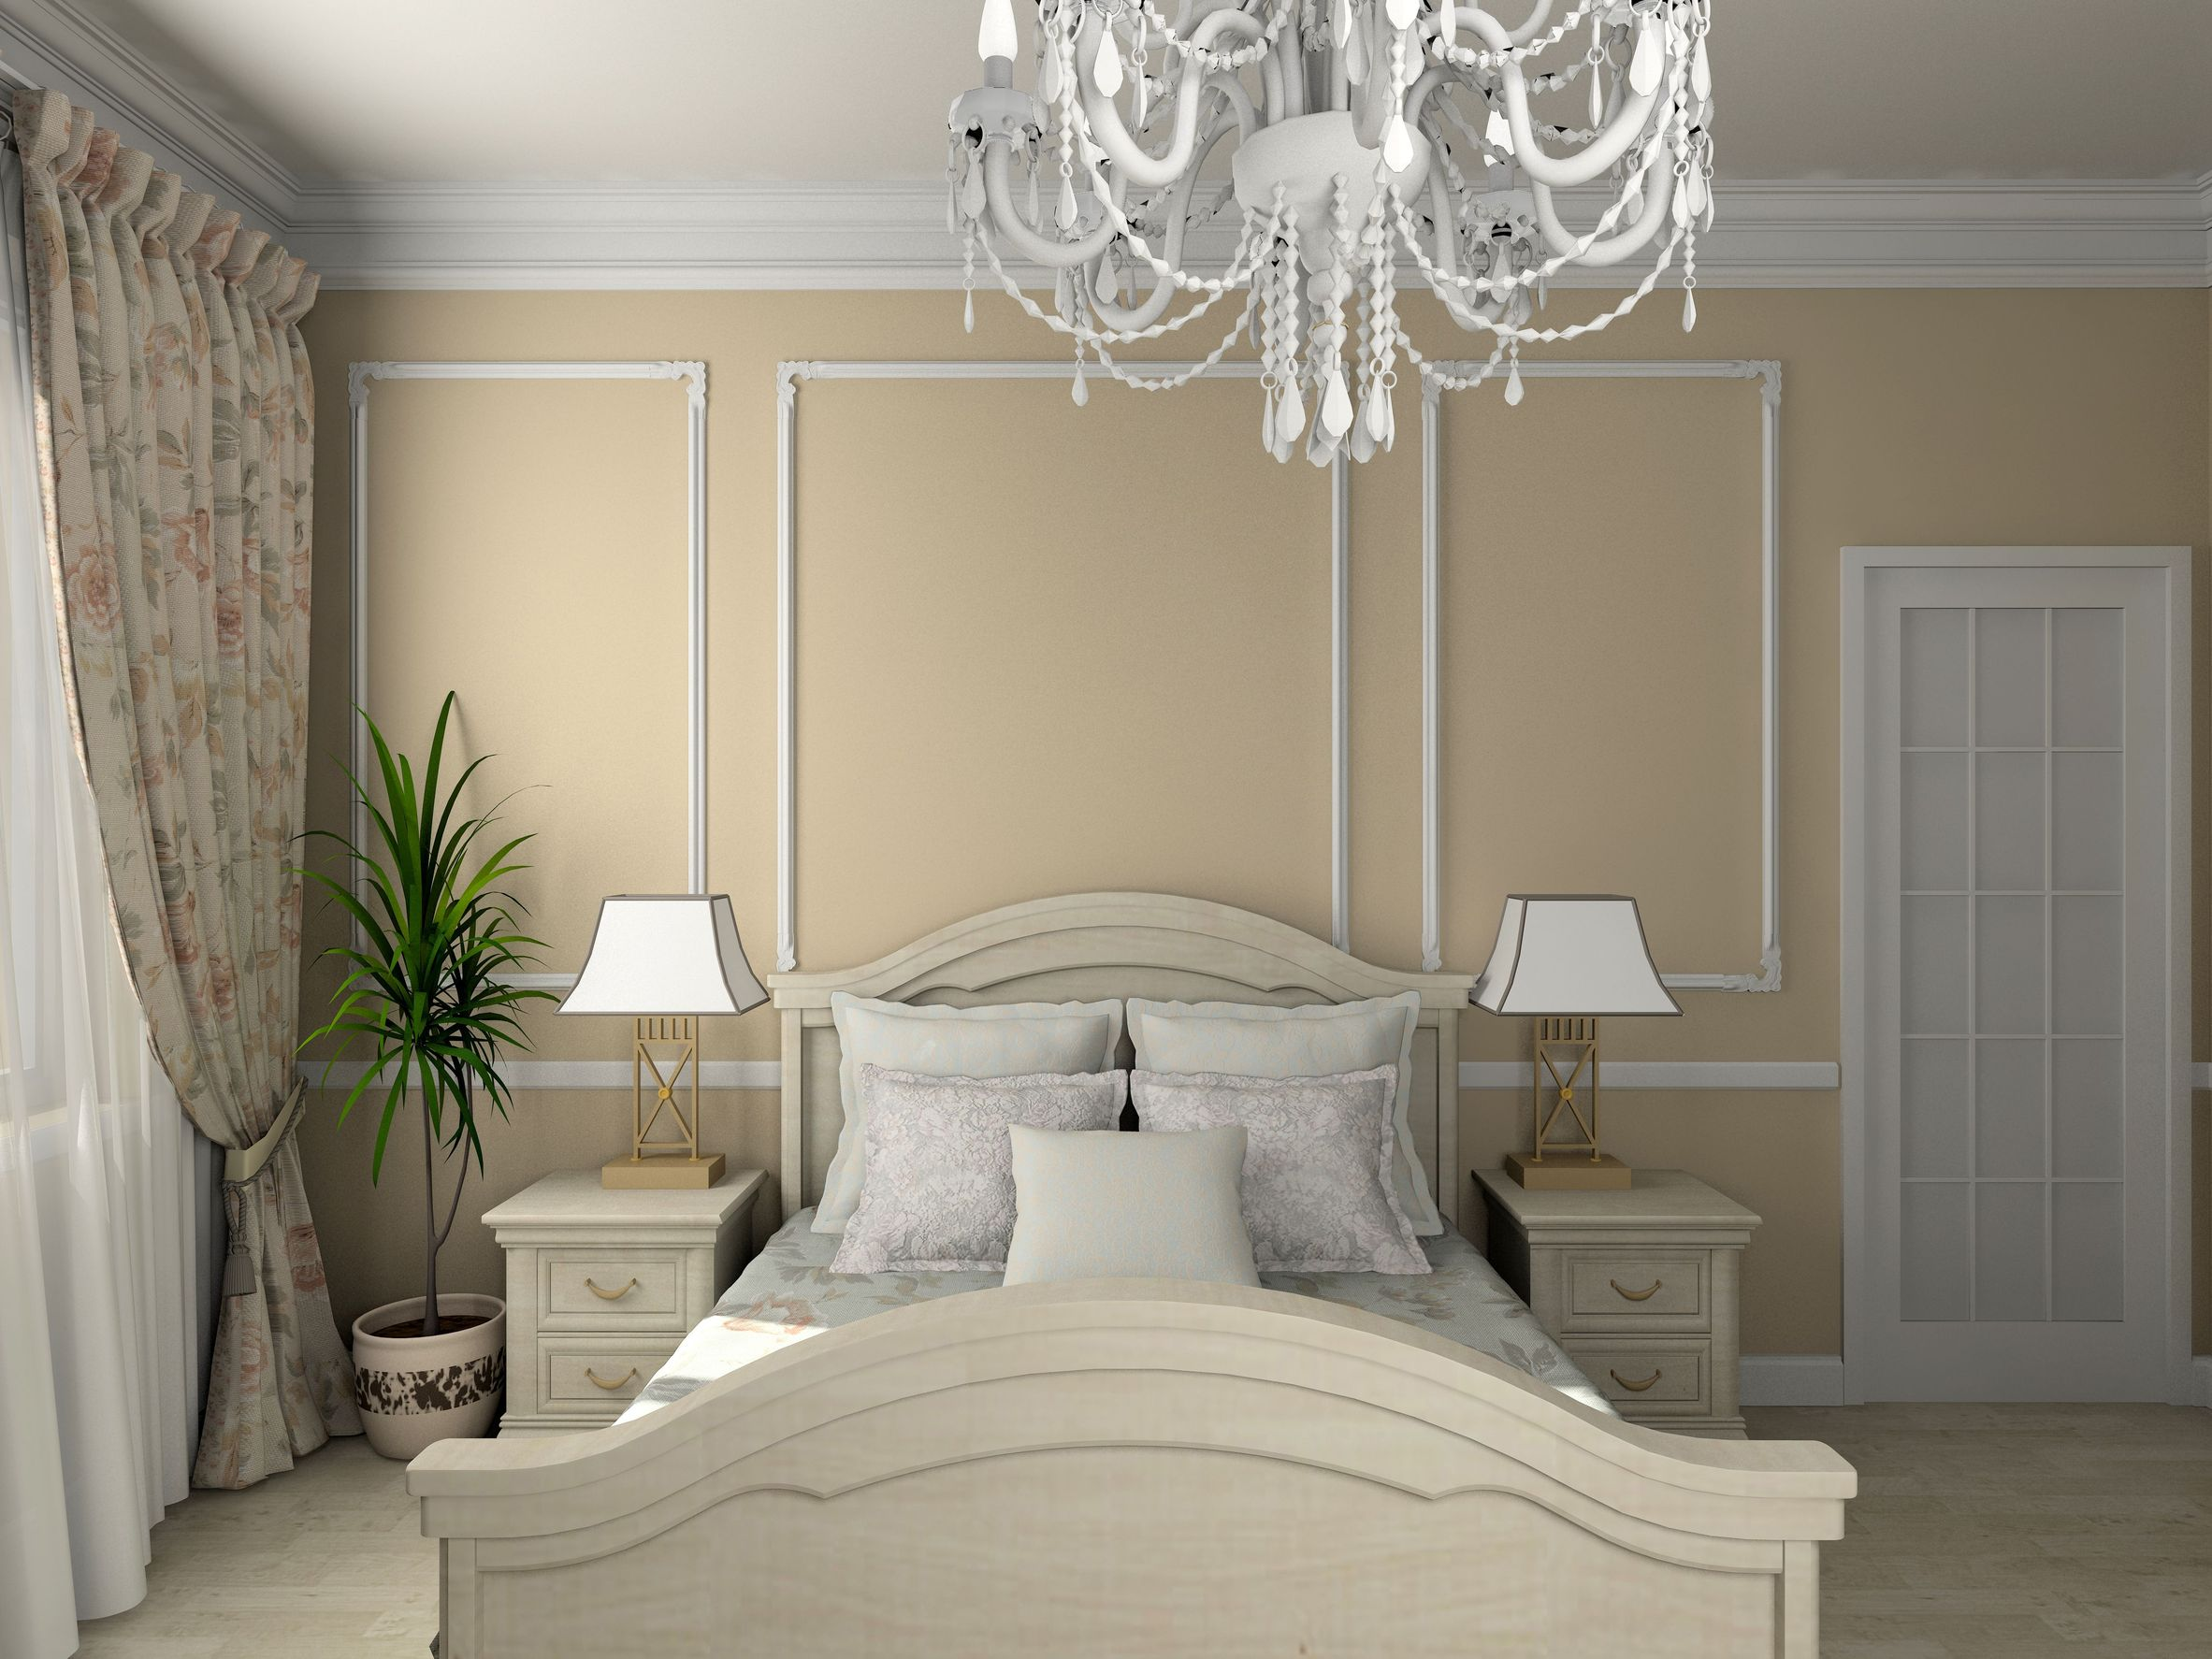 Bedroom chandelier ideas - large and beautiful photos. Photo to select ...